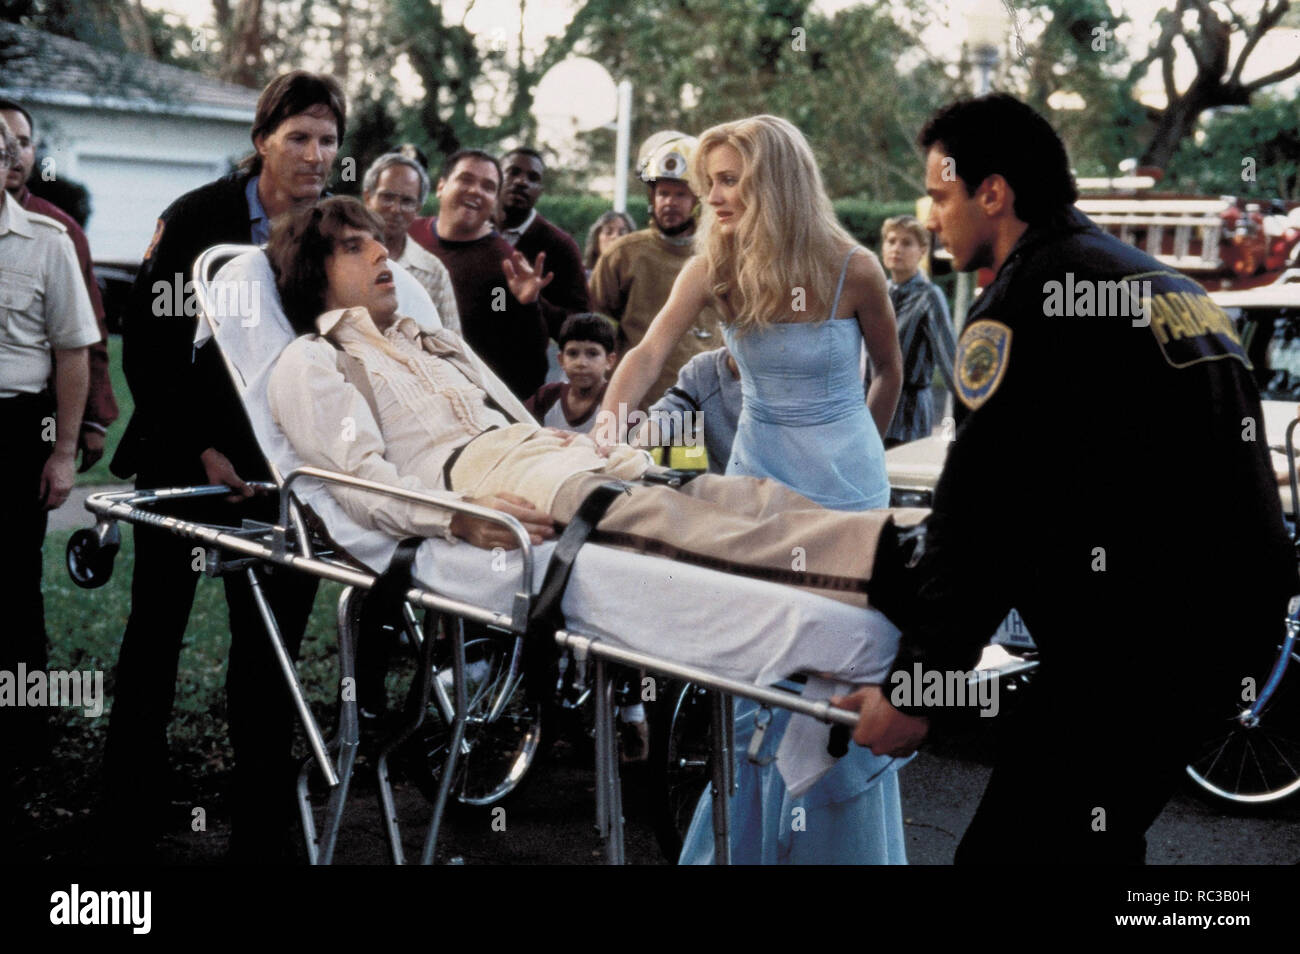 Original film title: THERE'S SOMETHING ABOUT MARY. English title: THERE'S SOMETHING ABOUT MARY. Year: 1998. Director: BOBBY & PETER FARRELLY; BOBBY FARRELLY; PETER FARRELLY. Stars: CAMERON DIAZ; BEN STILLER. Credit: 20TH CENTURY FOX / WATSON, GLEN / Album - Stock Image